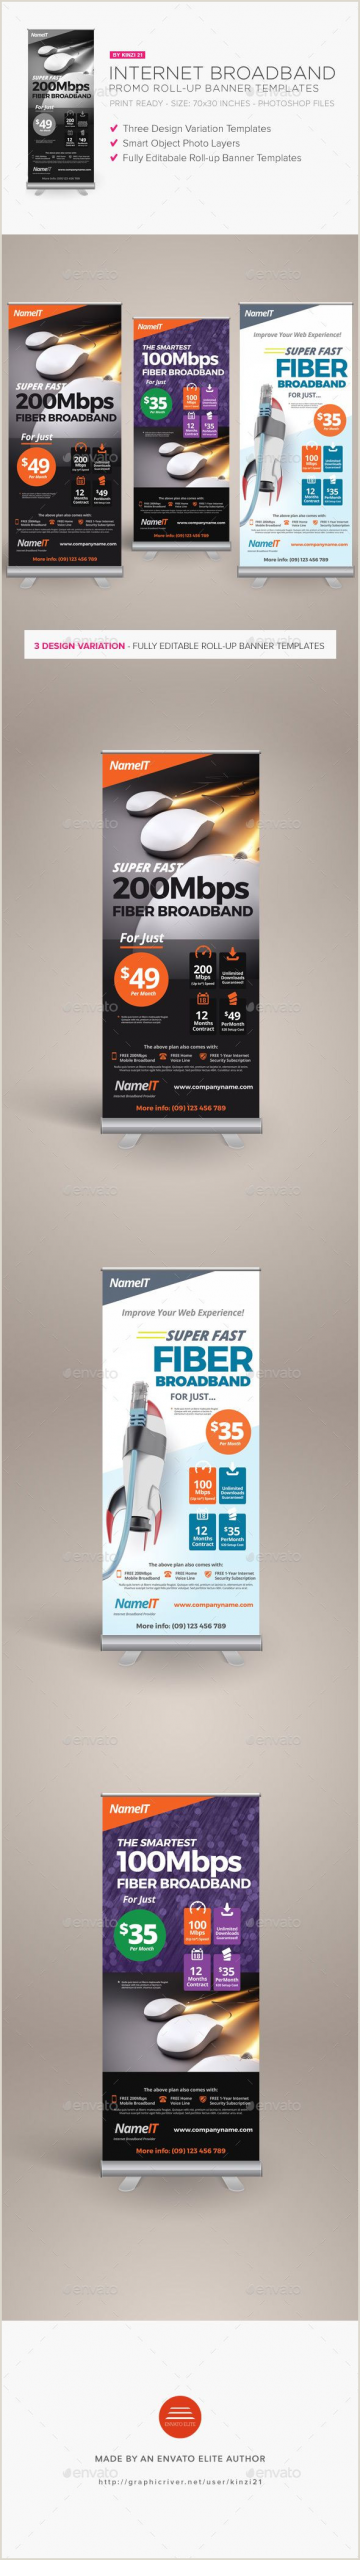 Print Roll Up Banner Rollup Banner Templates Stylish Graphics